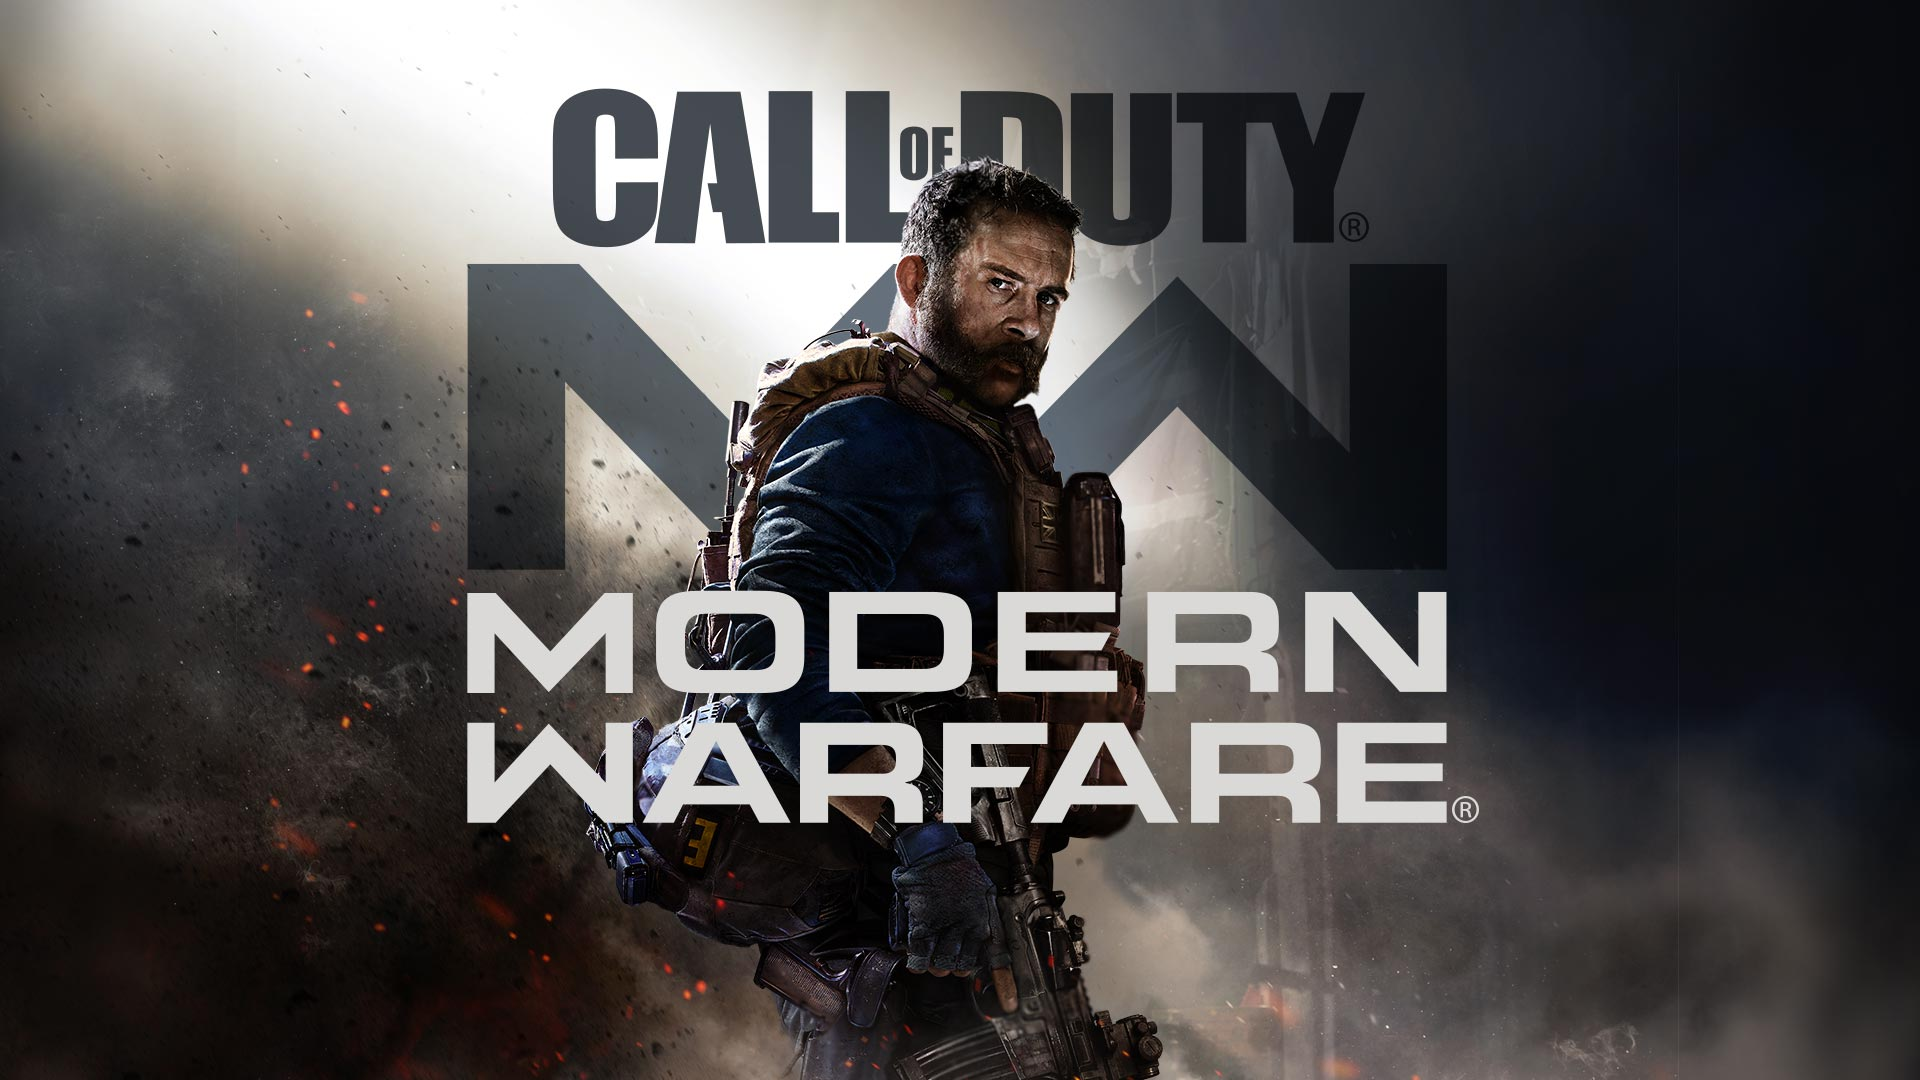 Call of Duty Modern Warfare Warzone PC Version Full Free Game Download